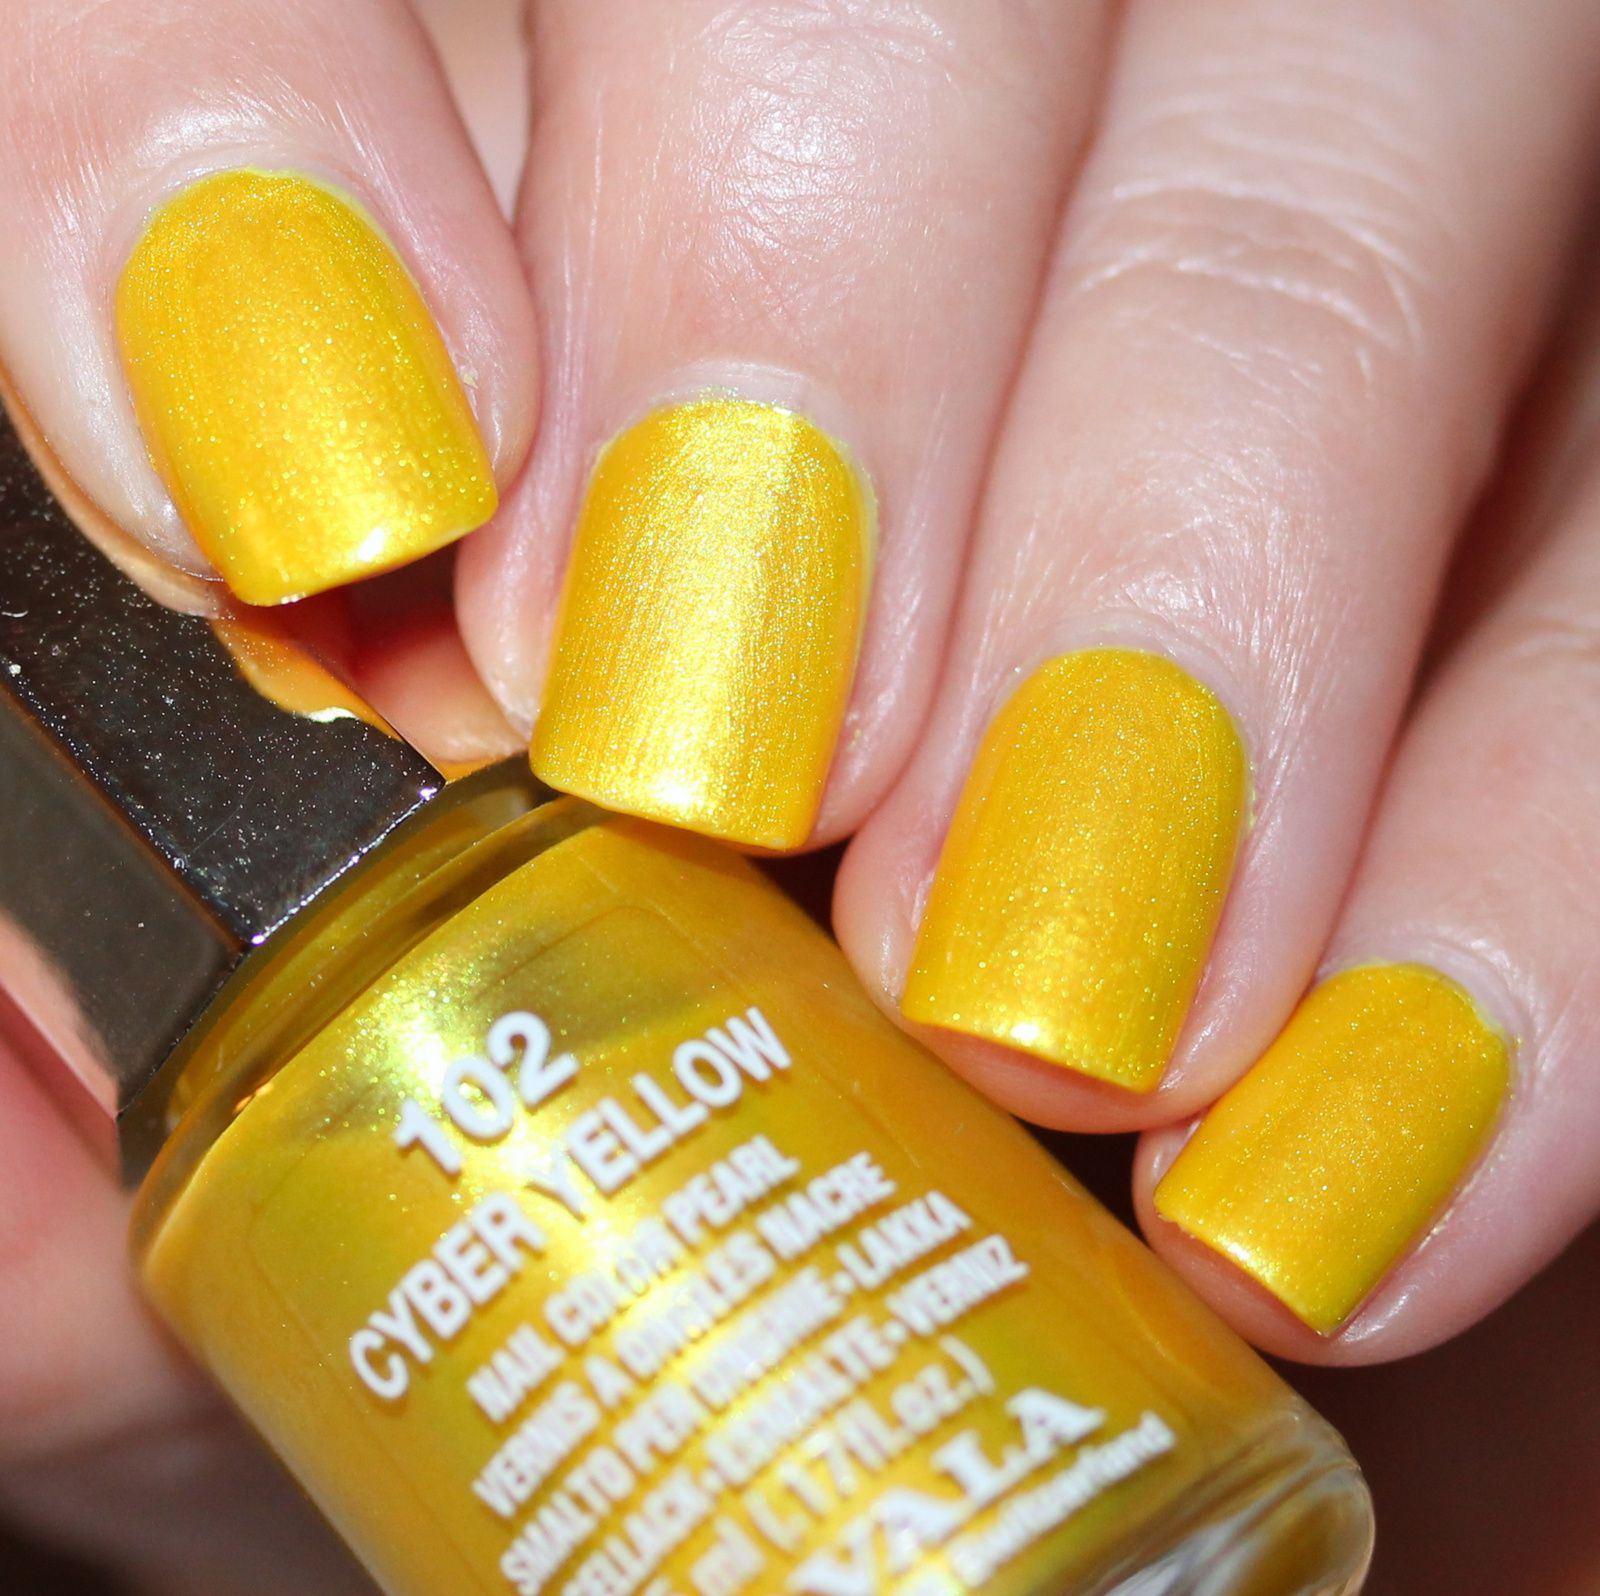 Sally Hansen Complete Care 4-in-1 Extra Moisturizing Nail Treatment / Mavala Cyber Yellow / Native War Paints Hurry, Hurry!Top Coat